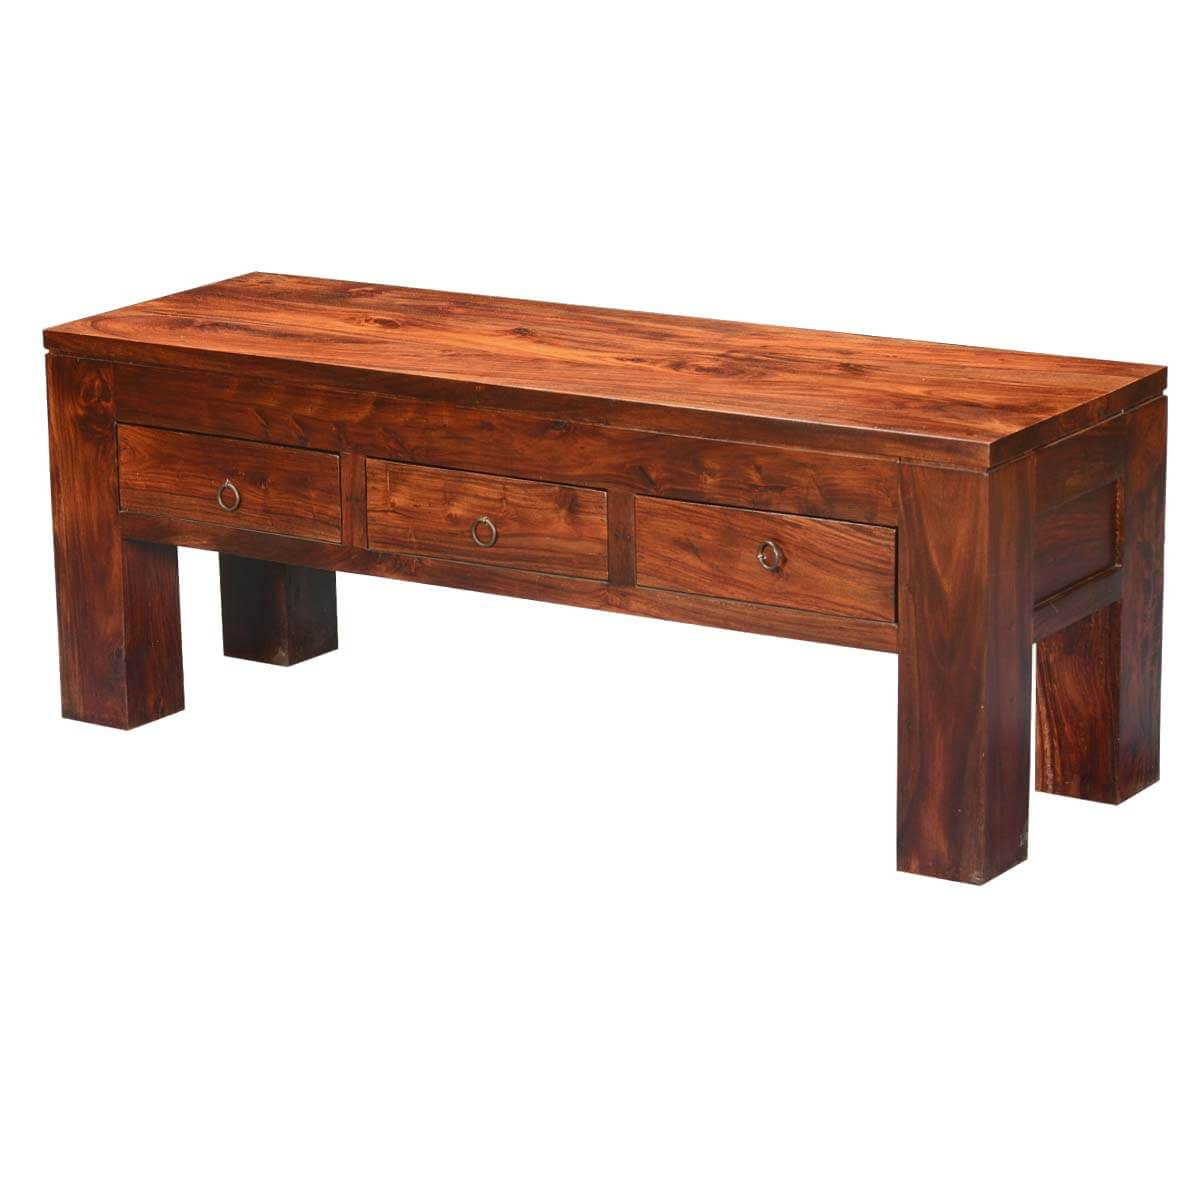 Solid Wood Coffee Table With Drawers: Mission Modern Solid Wood Hidden Drawers Coffee Table